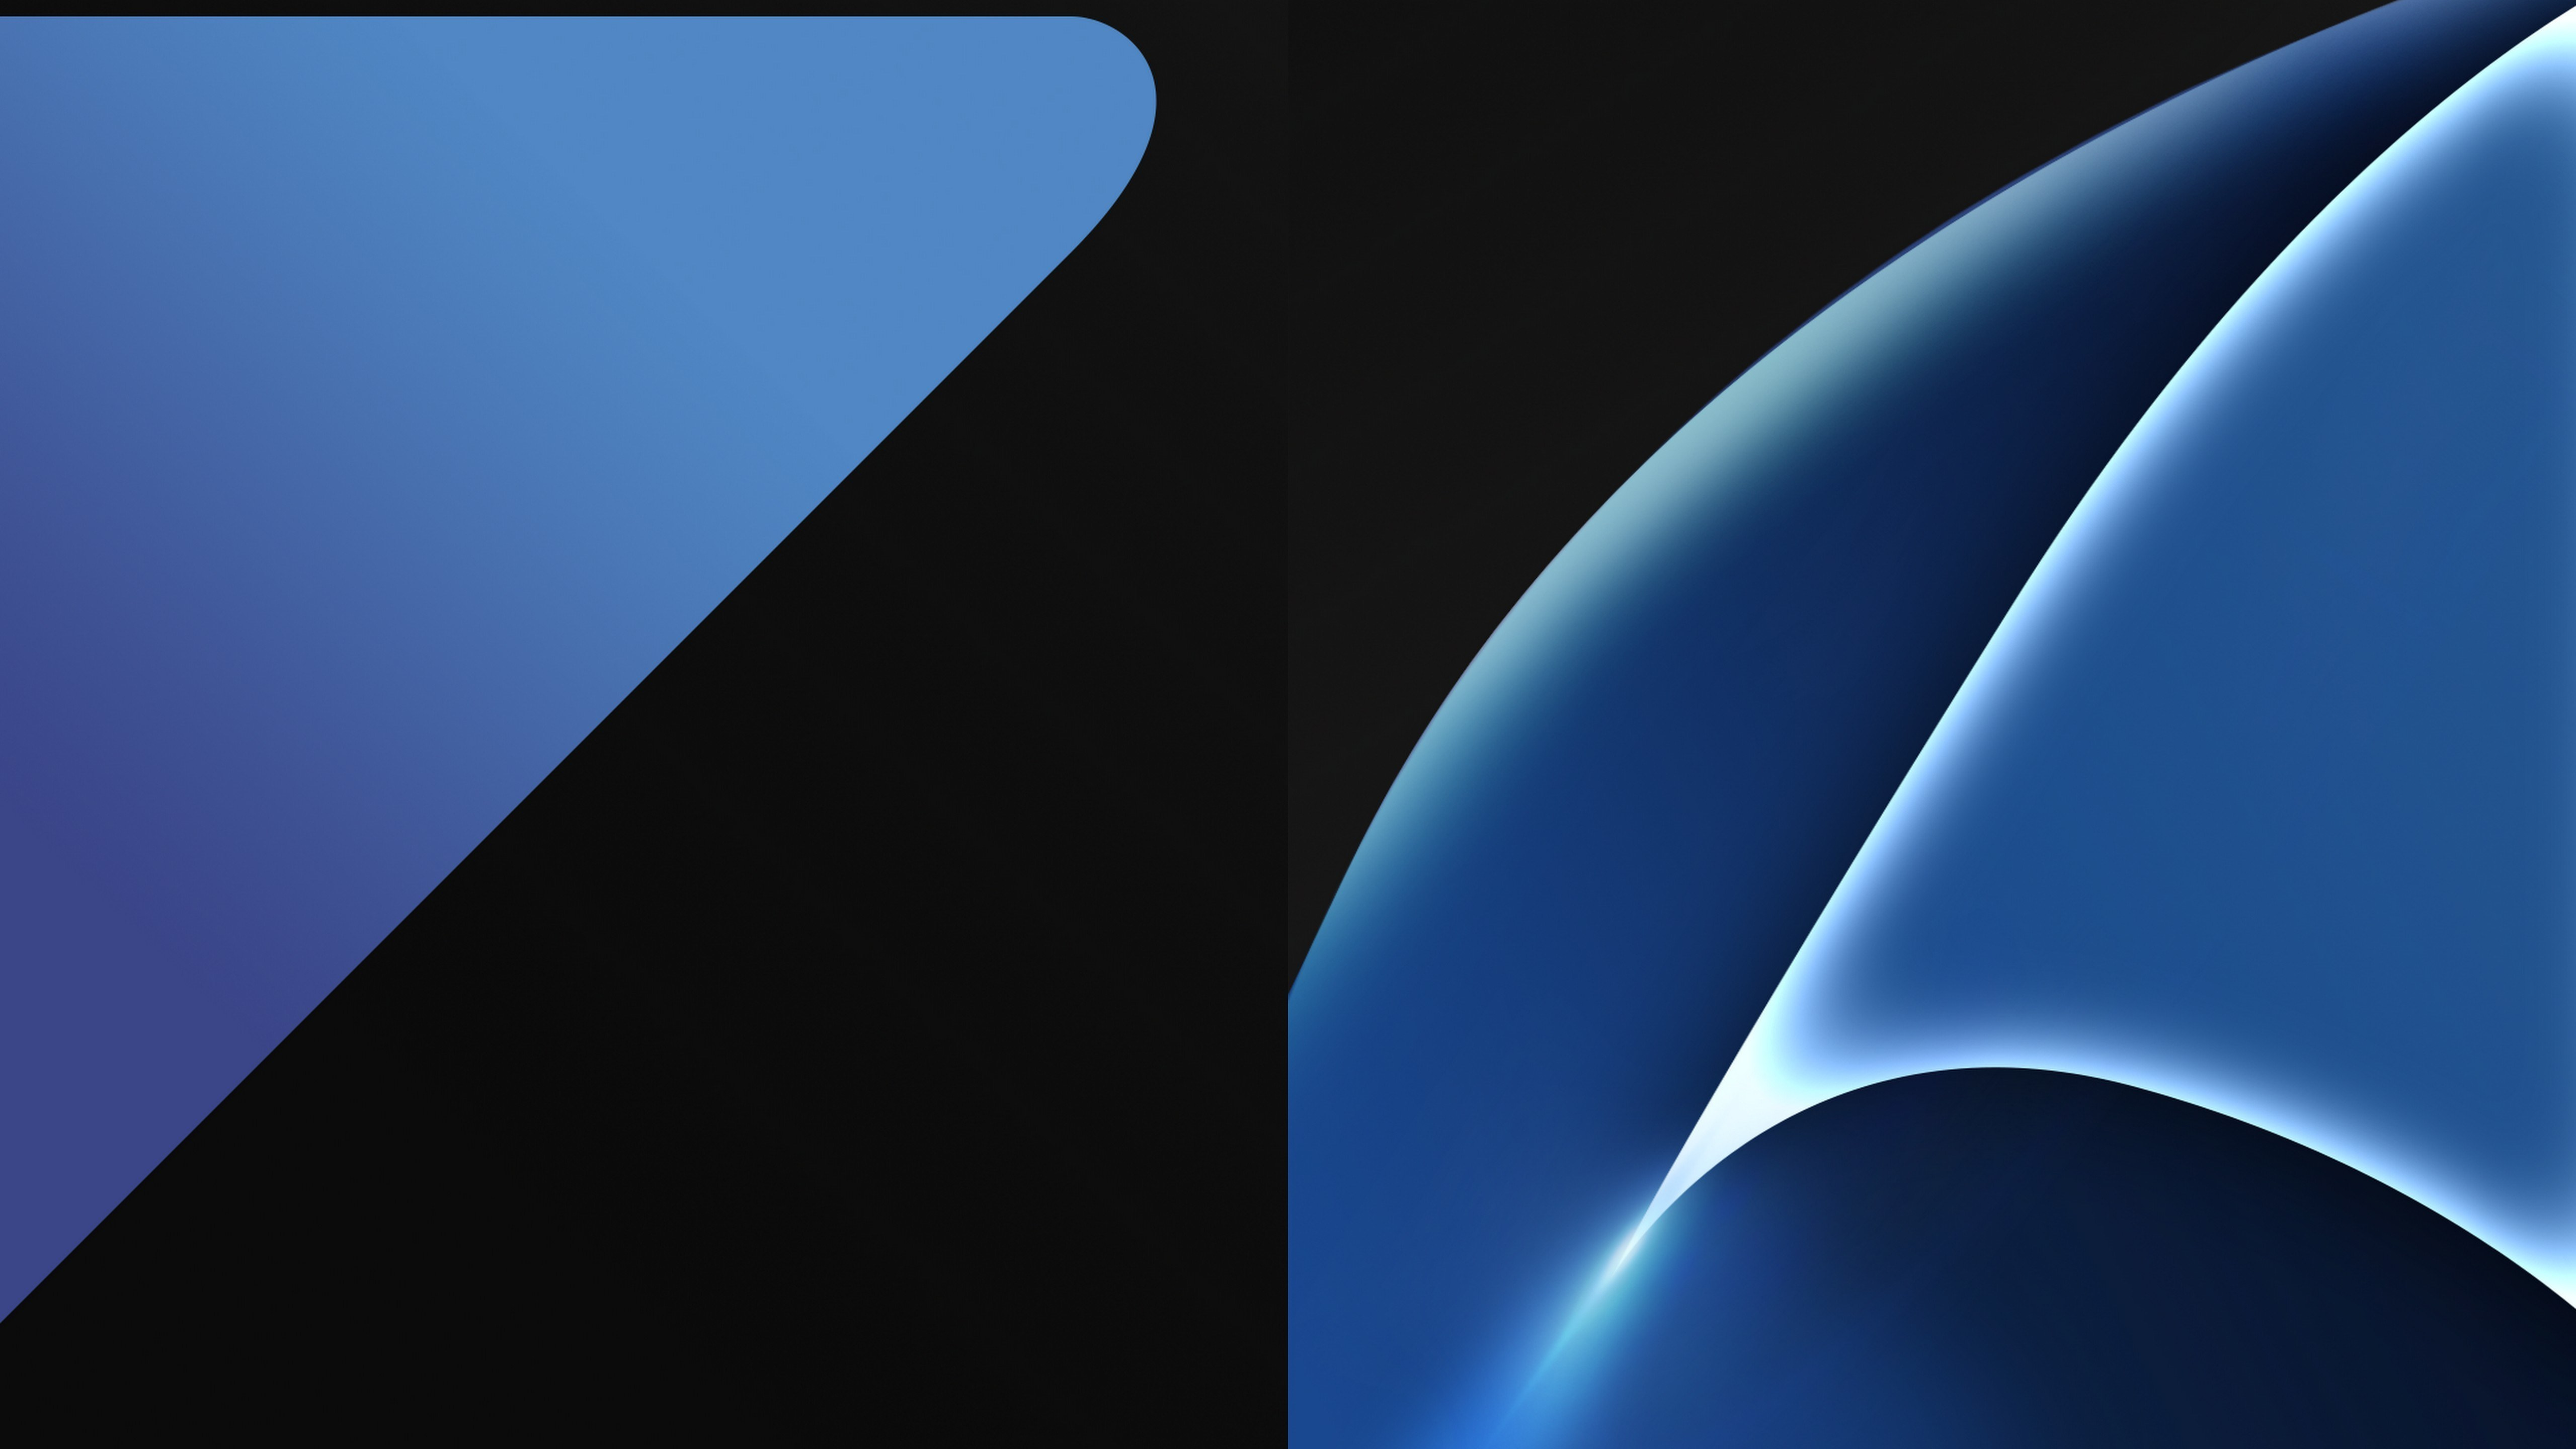 Samsung Galaxy S7 S7 Edge Stock Wallpapers Download: Galaxy S7 Home Screens Wallpaper